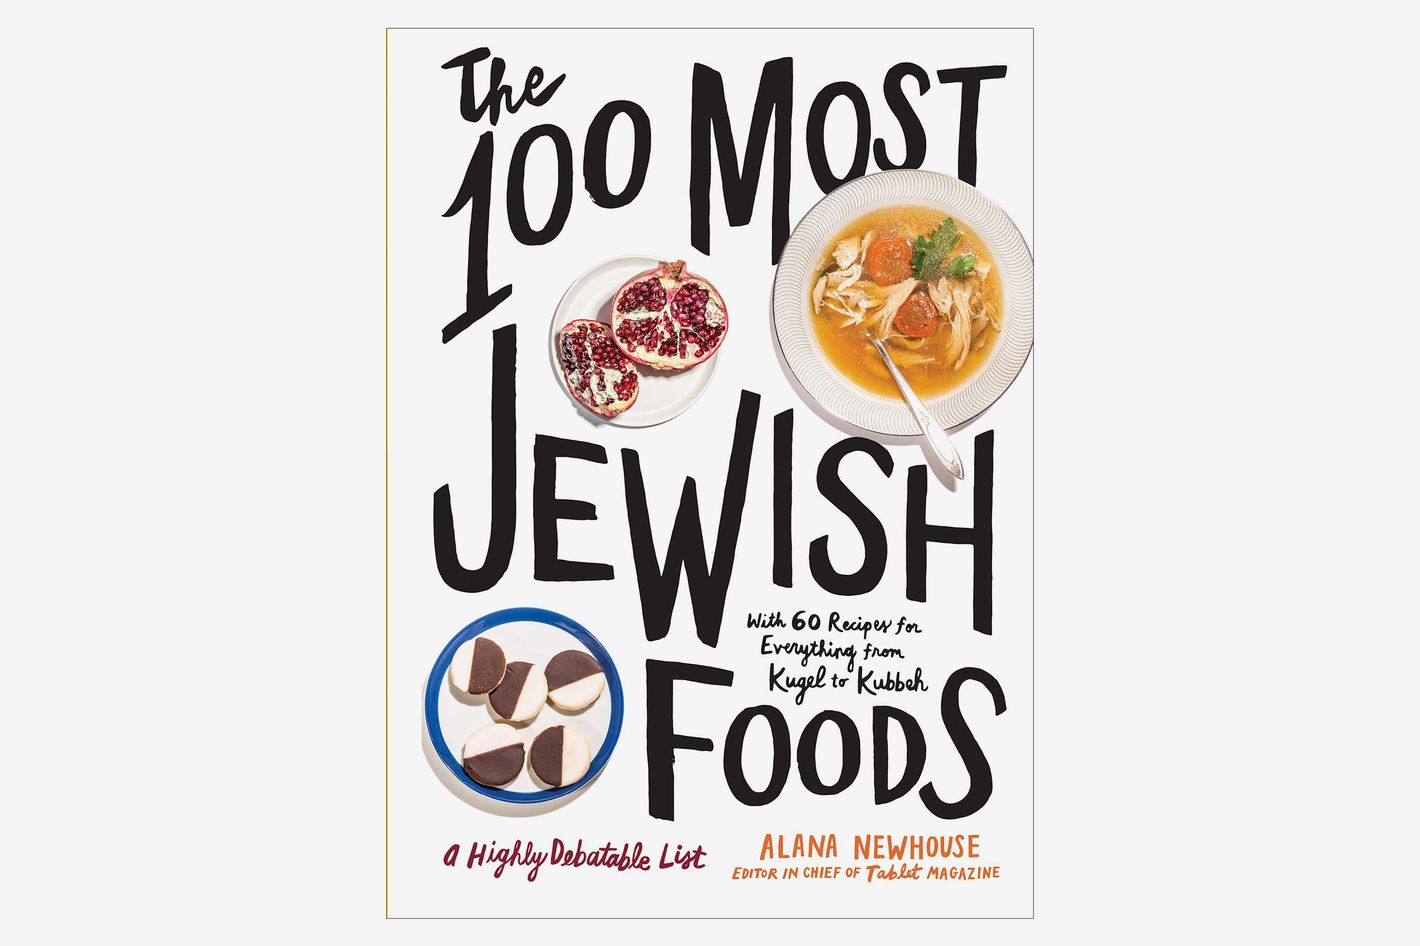 The 100 Most Jewish Foods: A Highly Debatable List